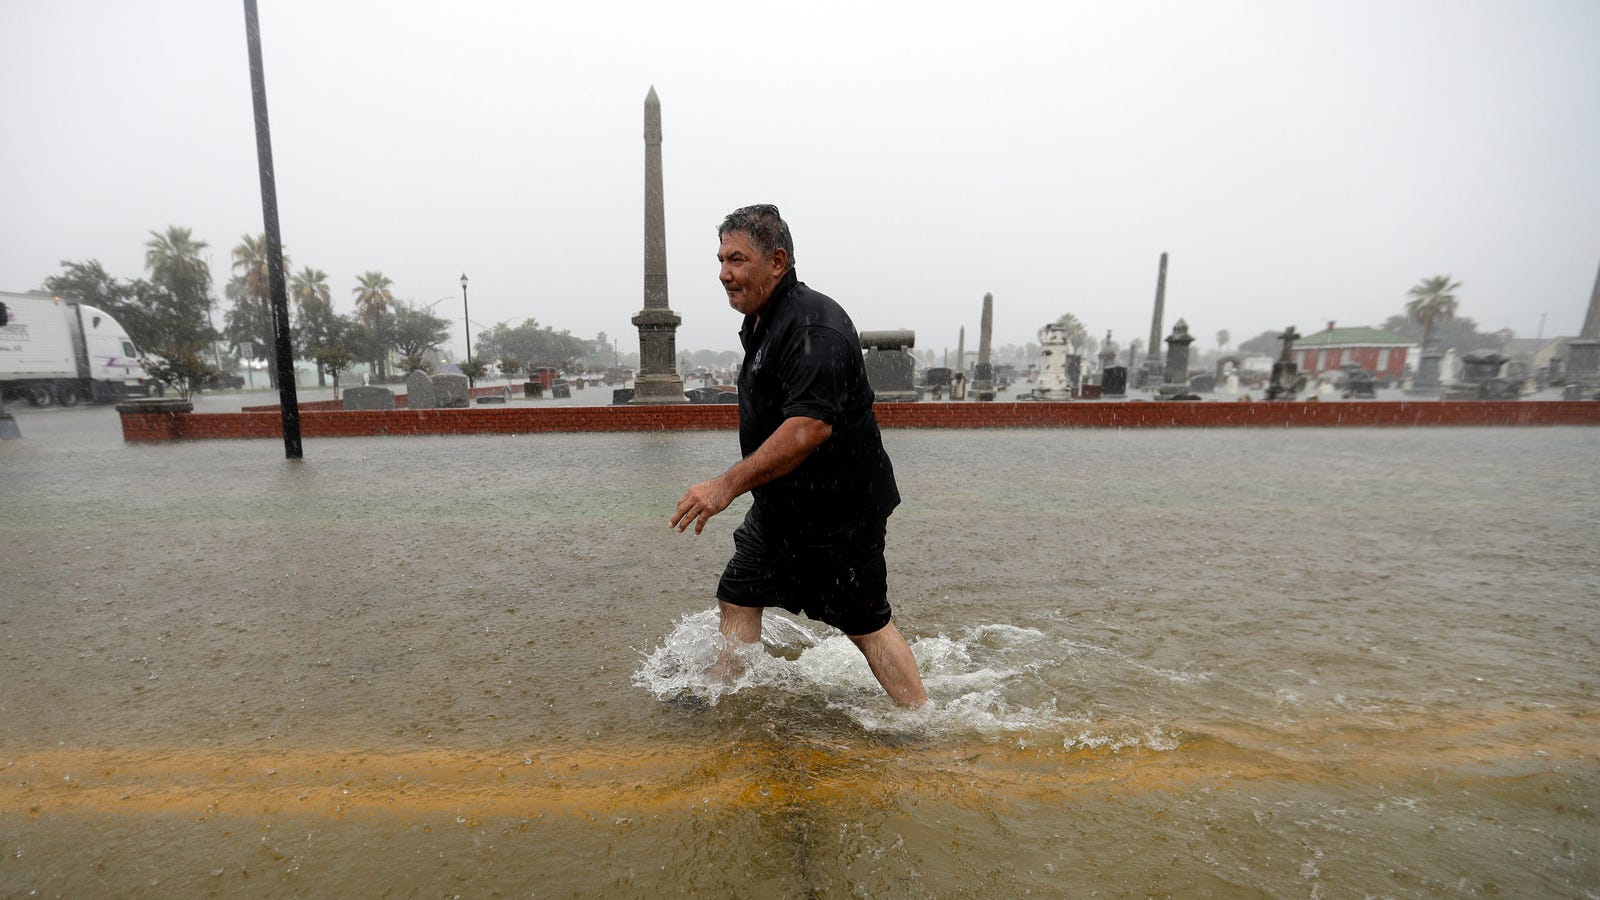 Tropical Depression Imelda Has Dumped More Than 40 Inches of Rain on the Texas Gulf Coast